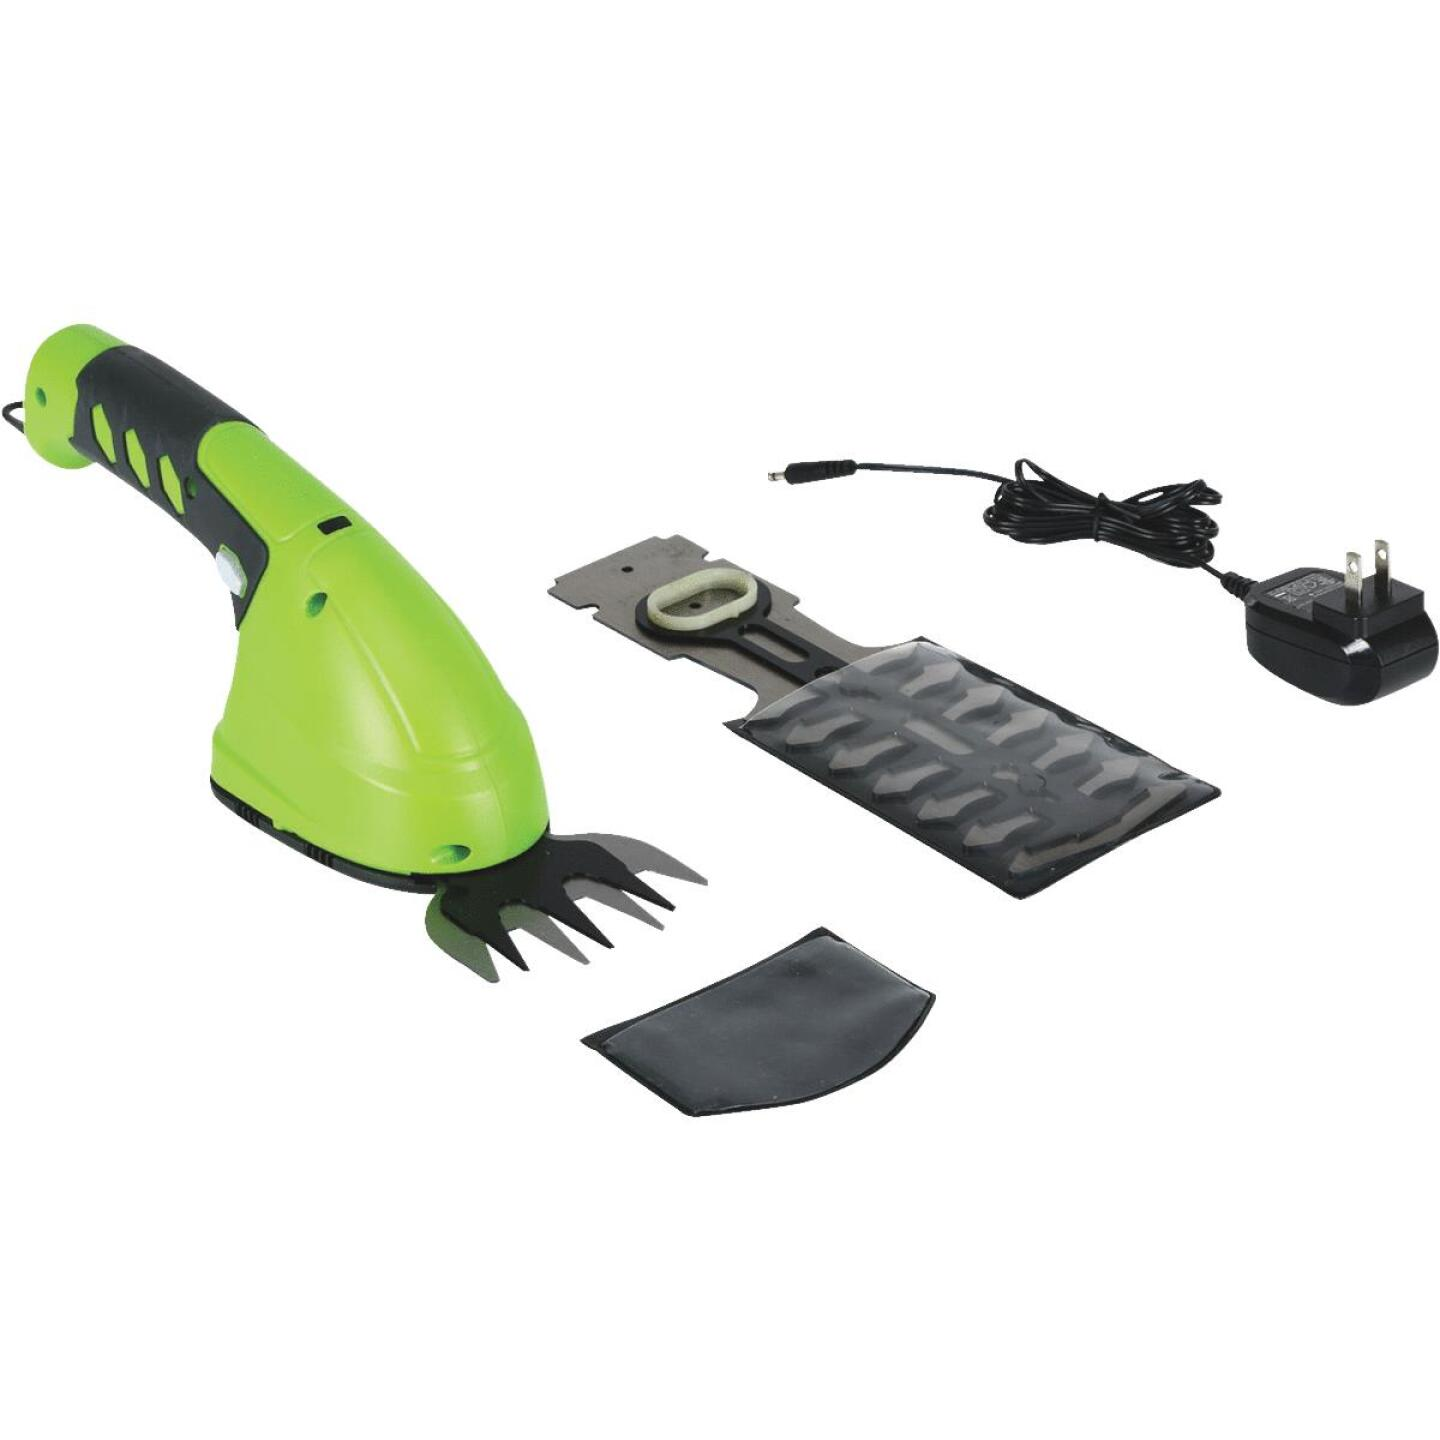 Greenworks 5 In. 7.2V Lithium Ion Cordless Grass Shear & Shrubber Image 1